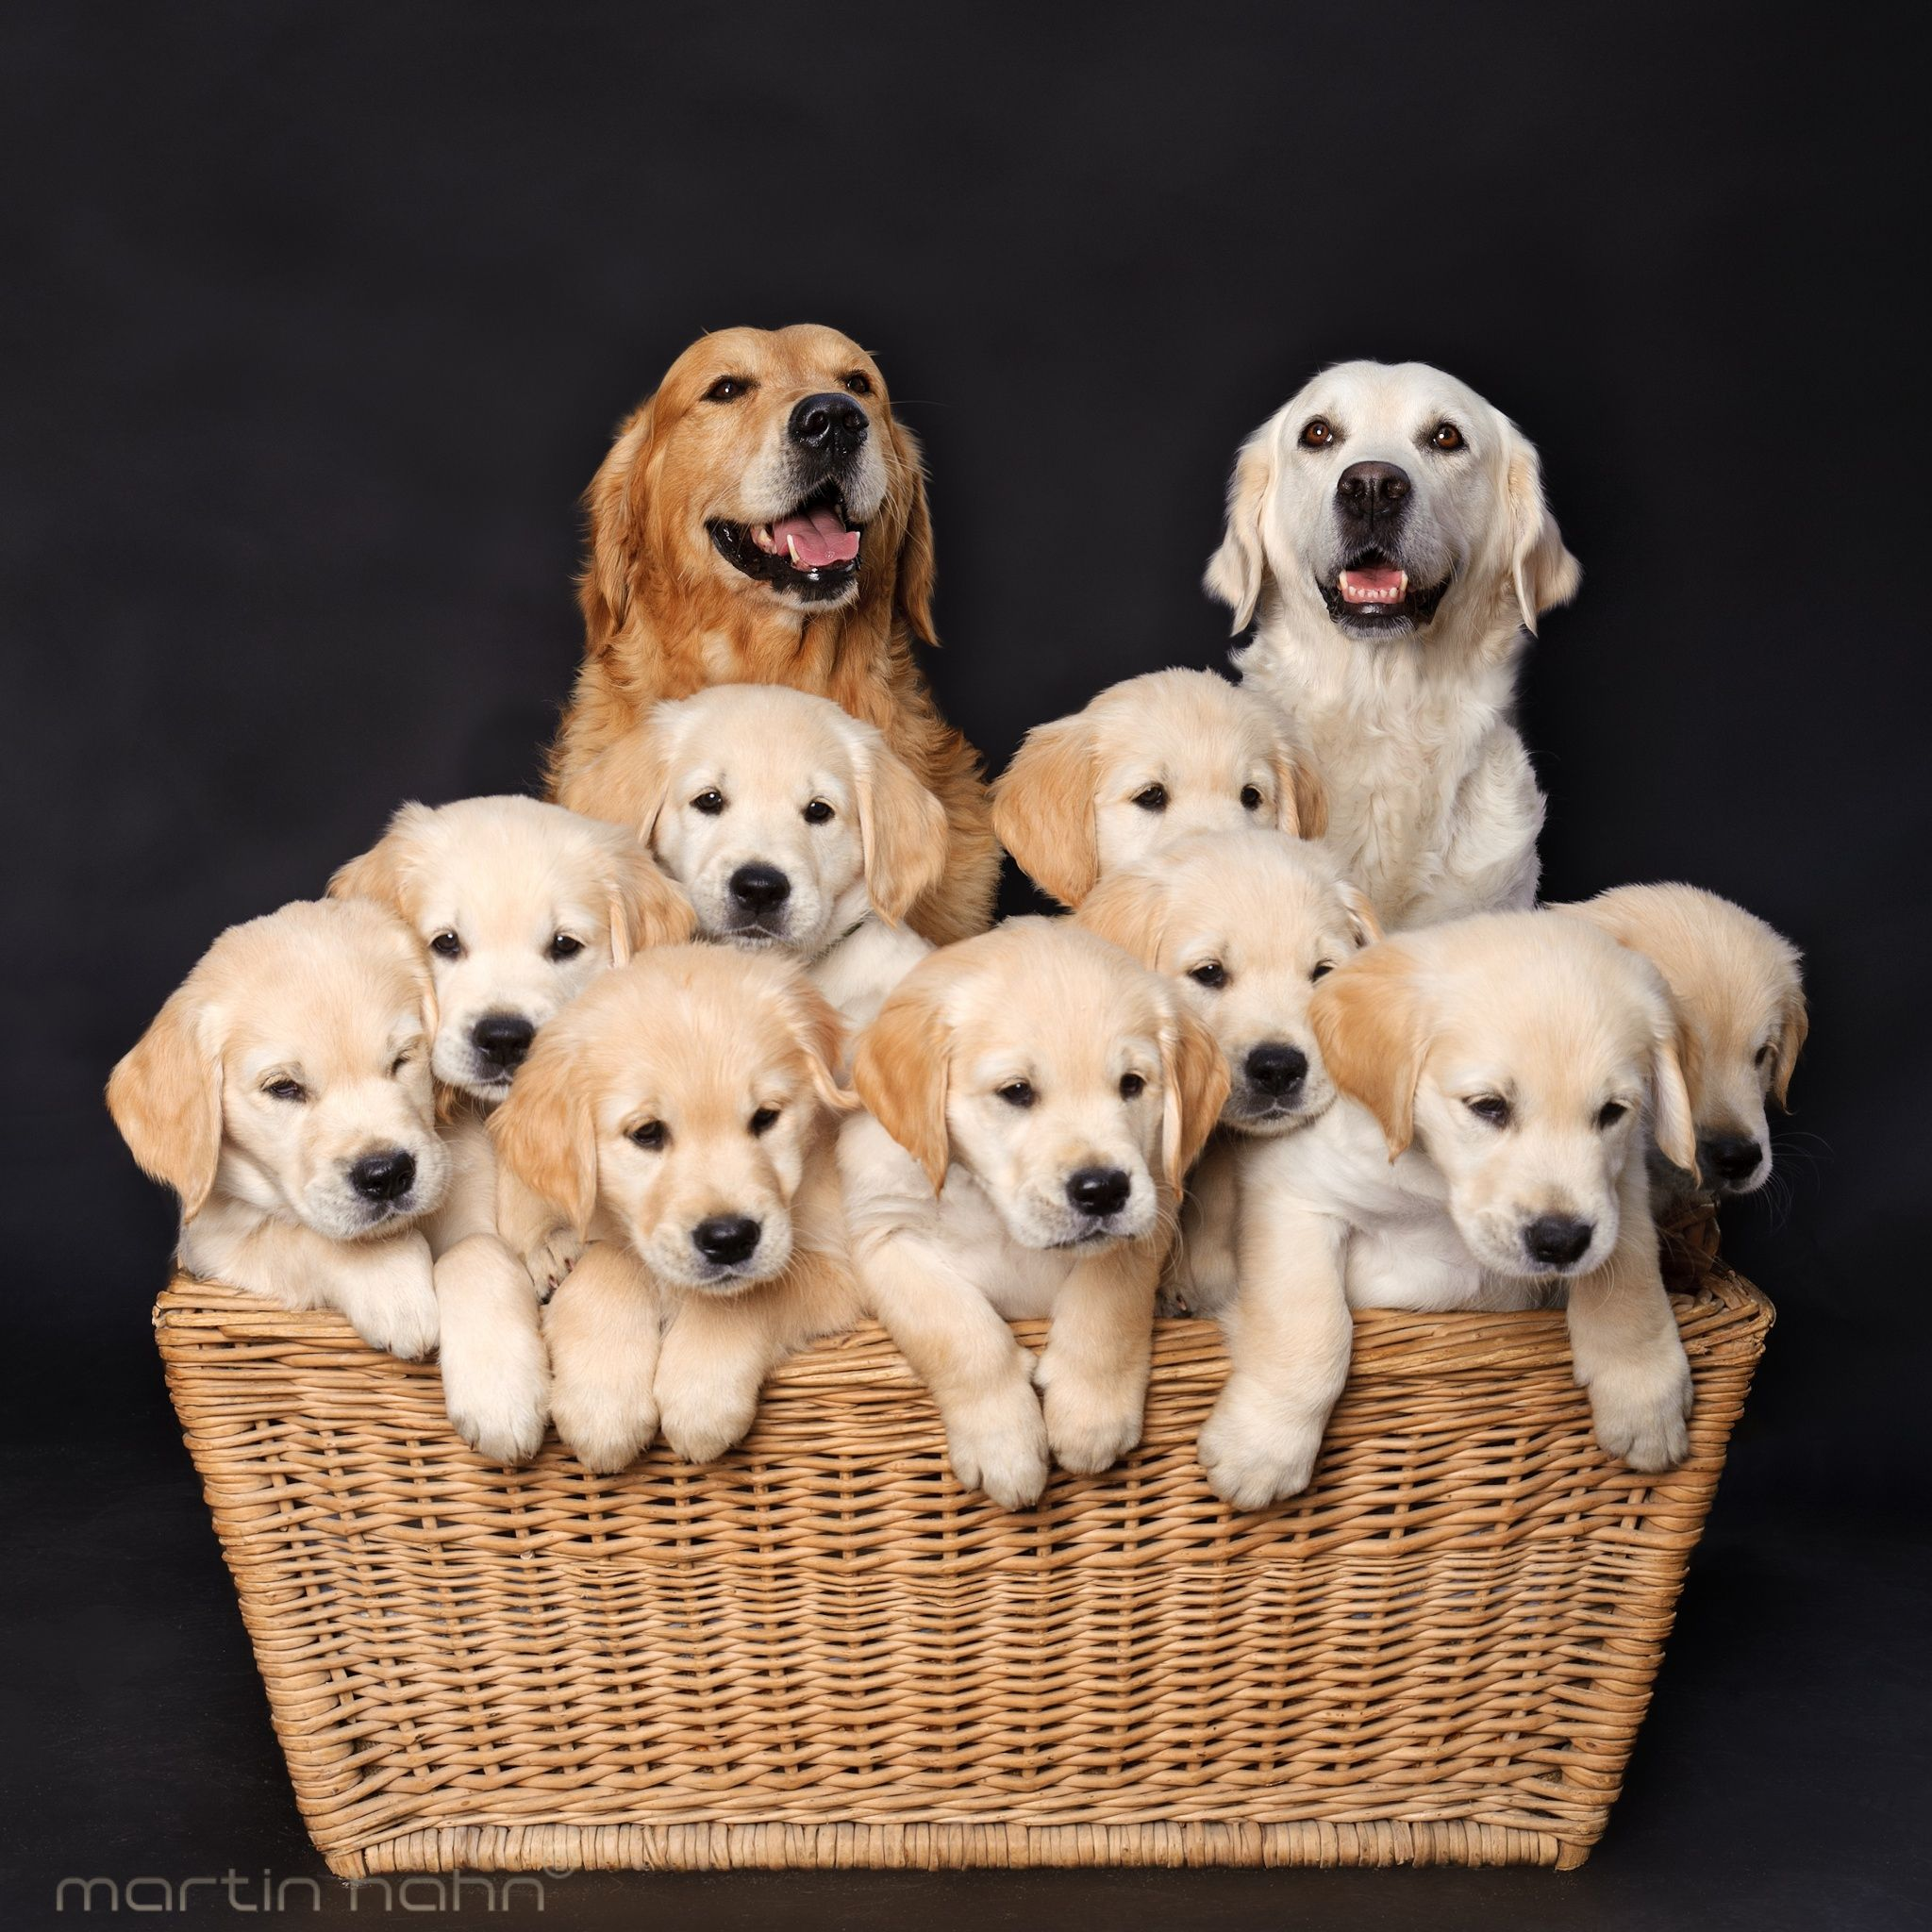 Dog Family By Martin Hahn On 500px Puppies Dogs Golden Retriever